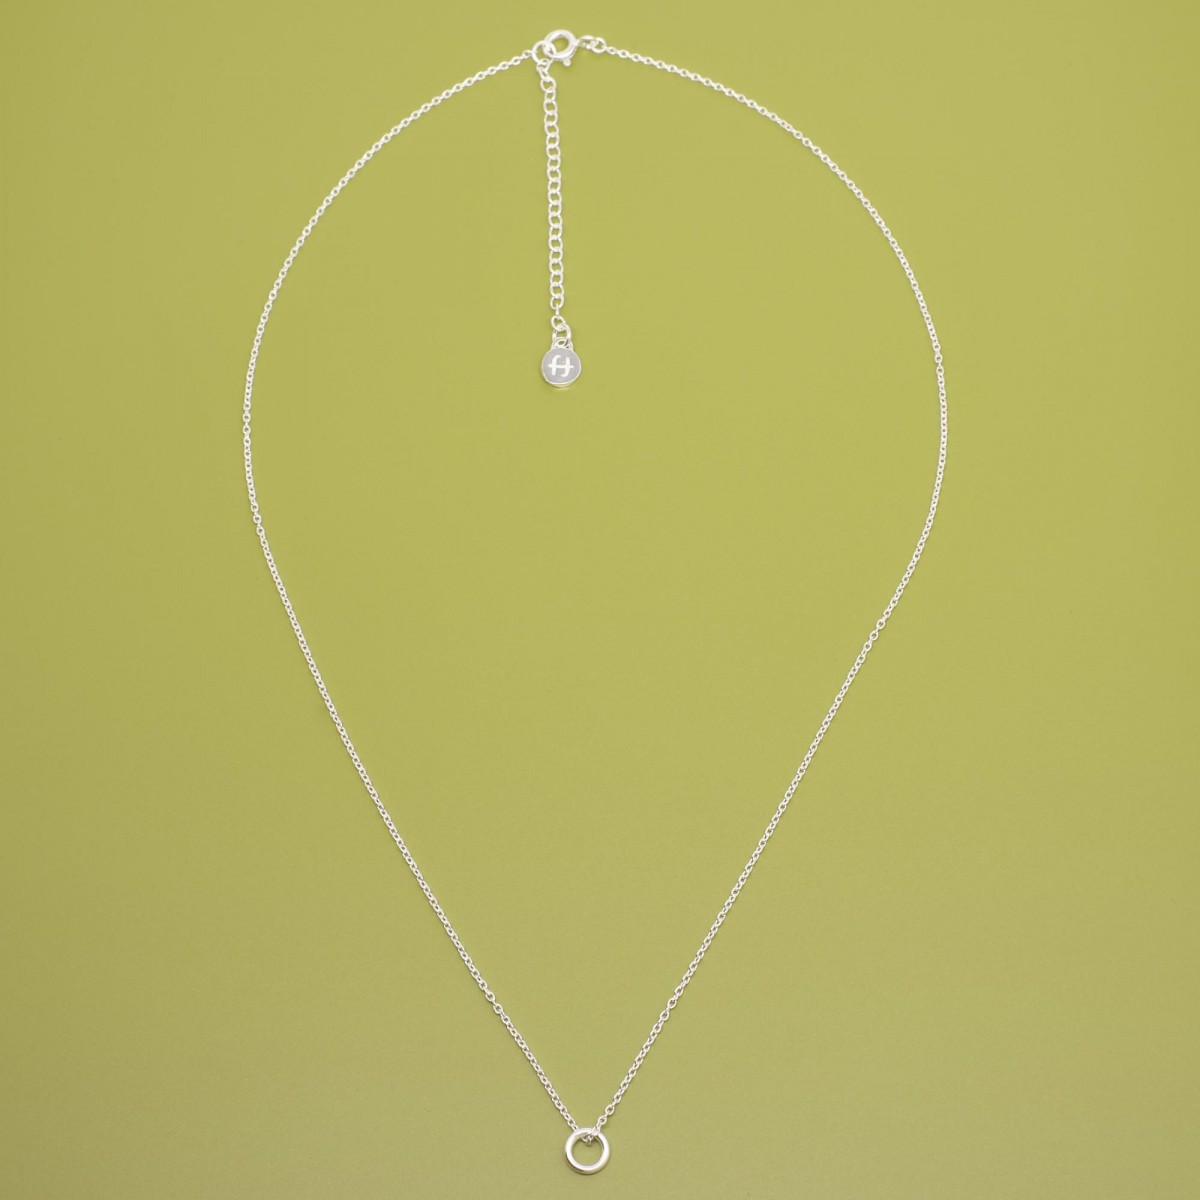 fejn jewelry - Kette 'small circle'